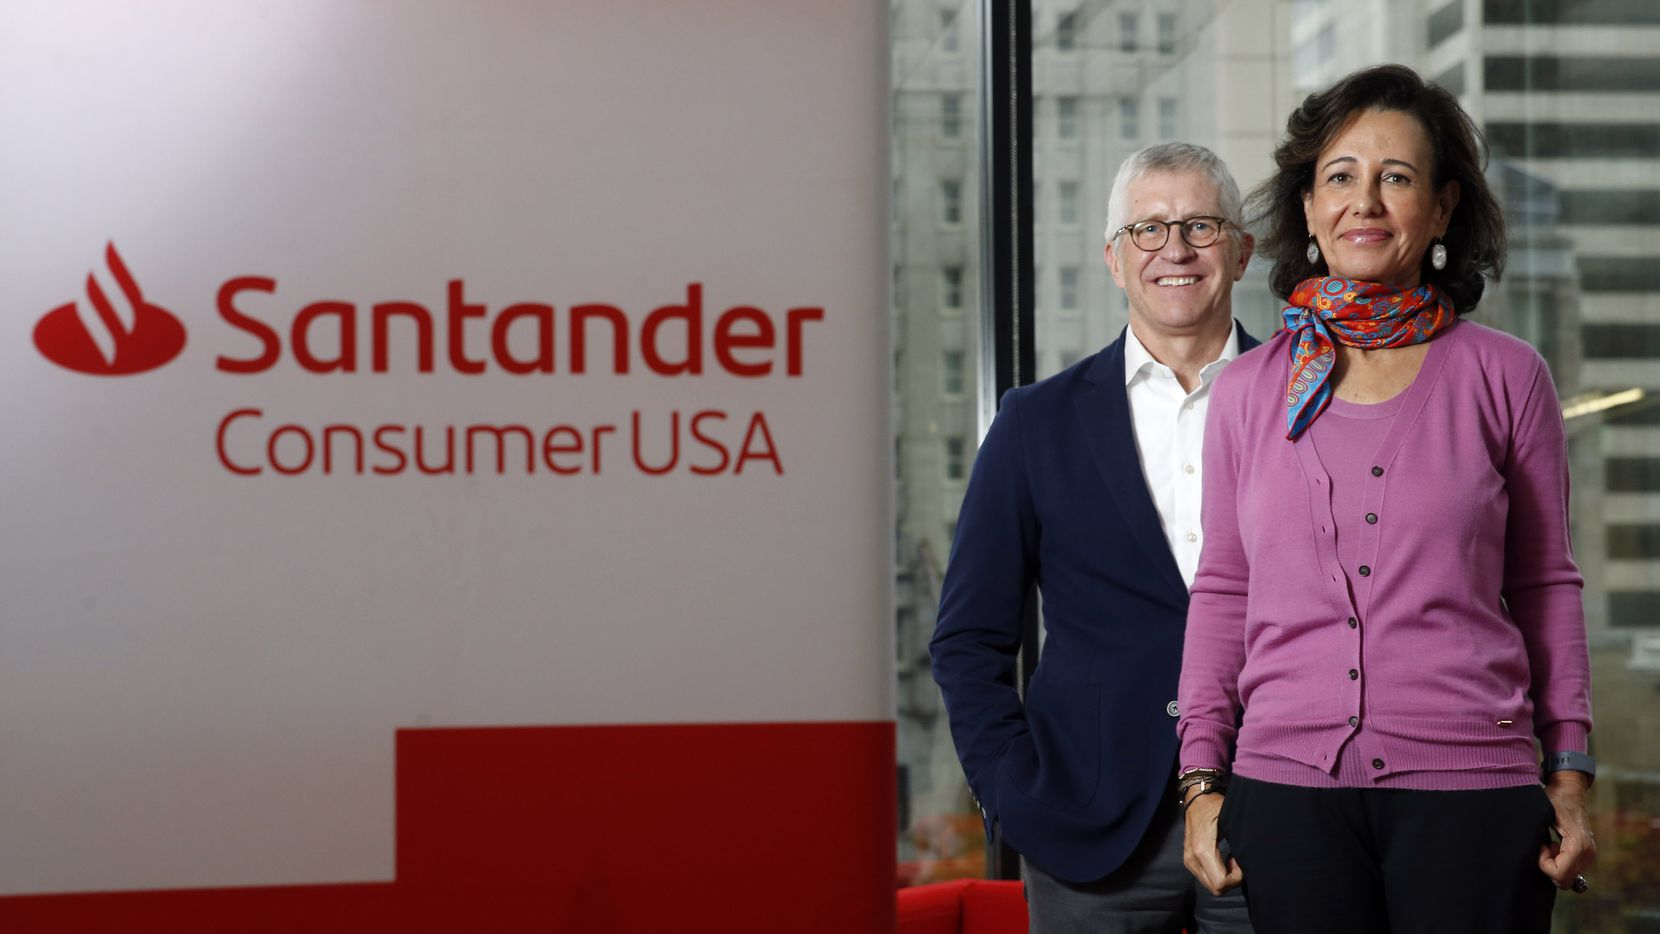 Scott Powell, CEO of Santander Consumer USA, and Ana Botin, chairman of the parent company, are trying to raise the Dallas company's profile now that the subprime auto lender has addressed many legal and regulatory problems.